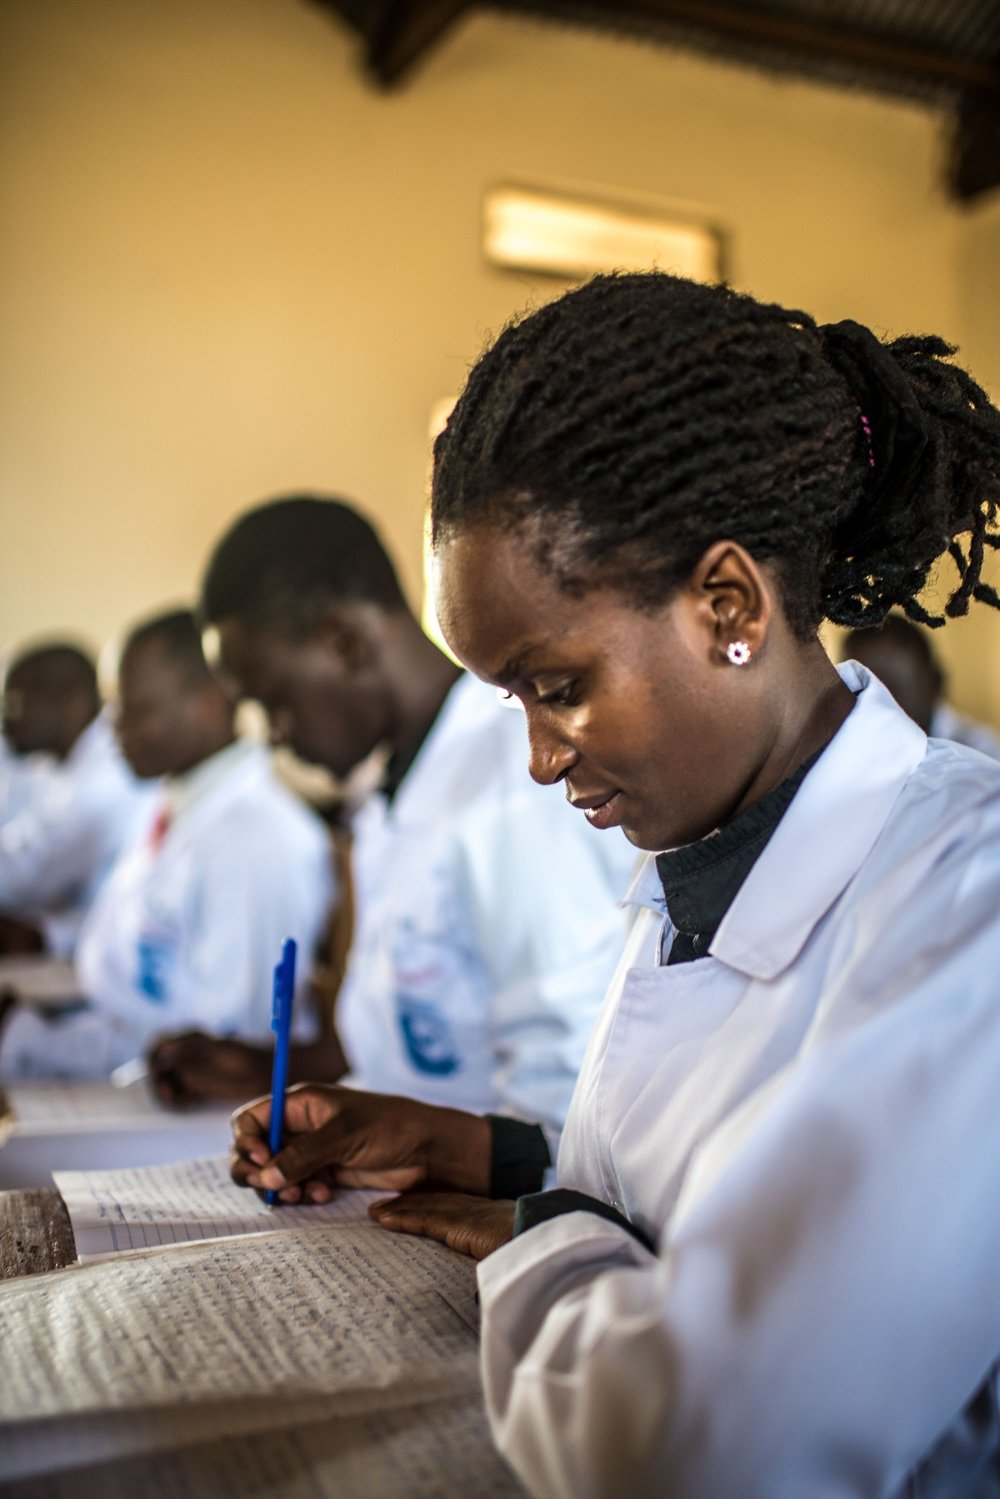 Nikiria Caoline, 21, a student of the Soroti Pharmacy School, takes notes during a class.